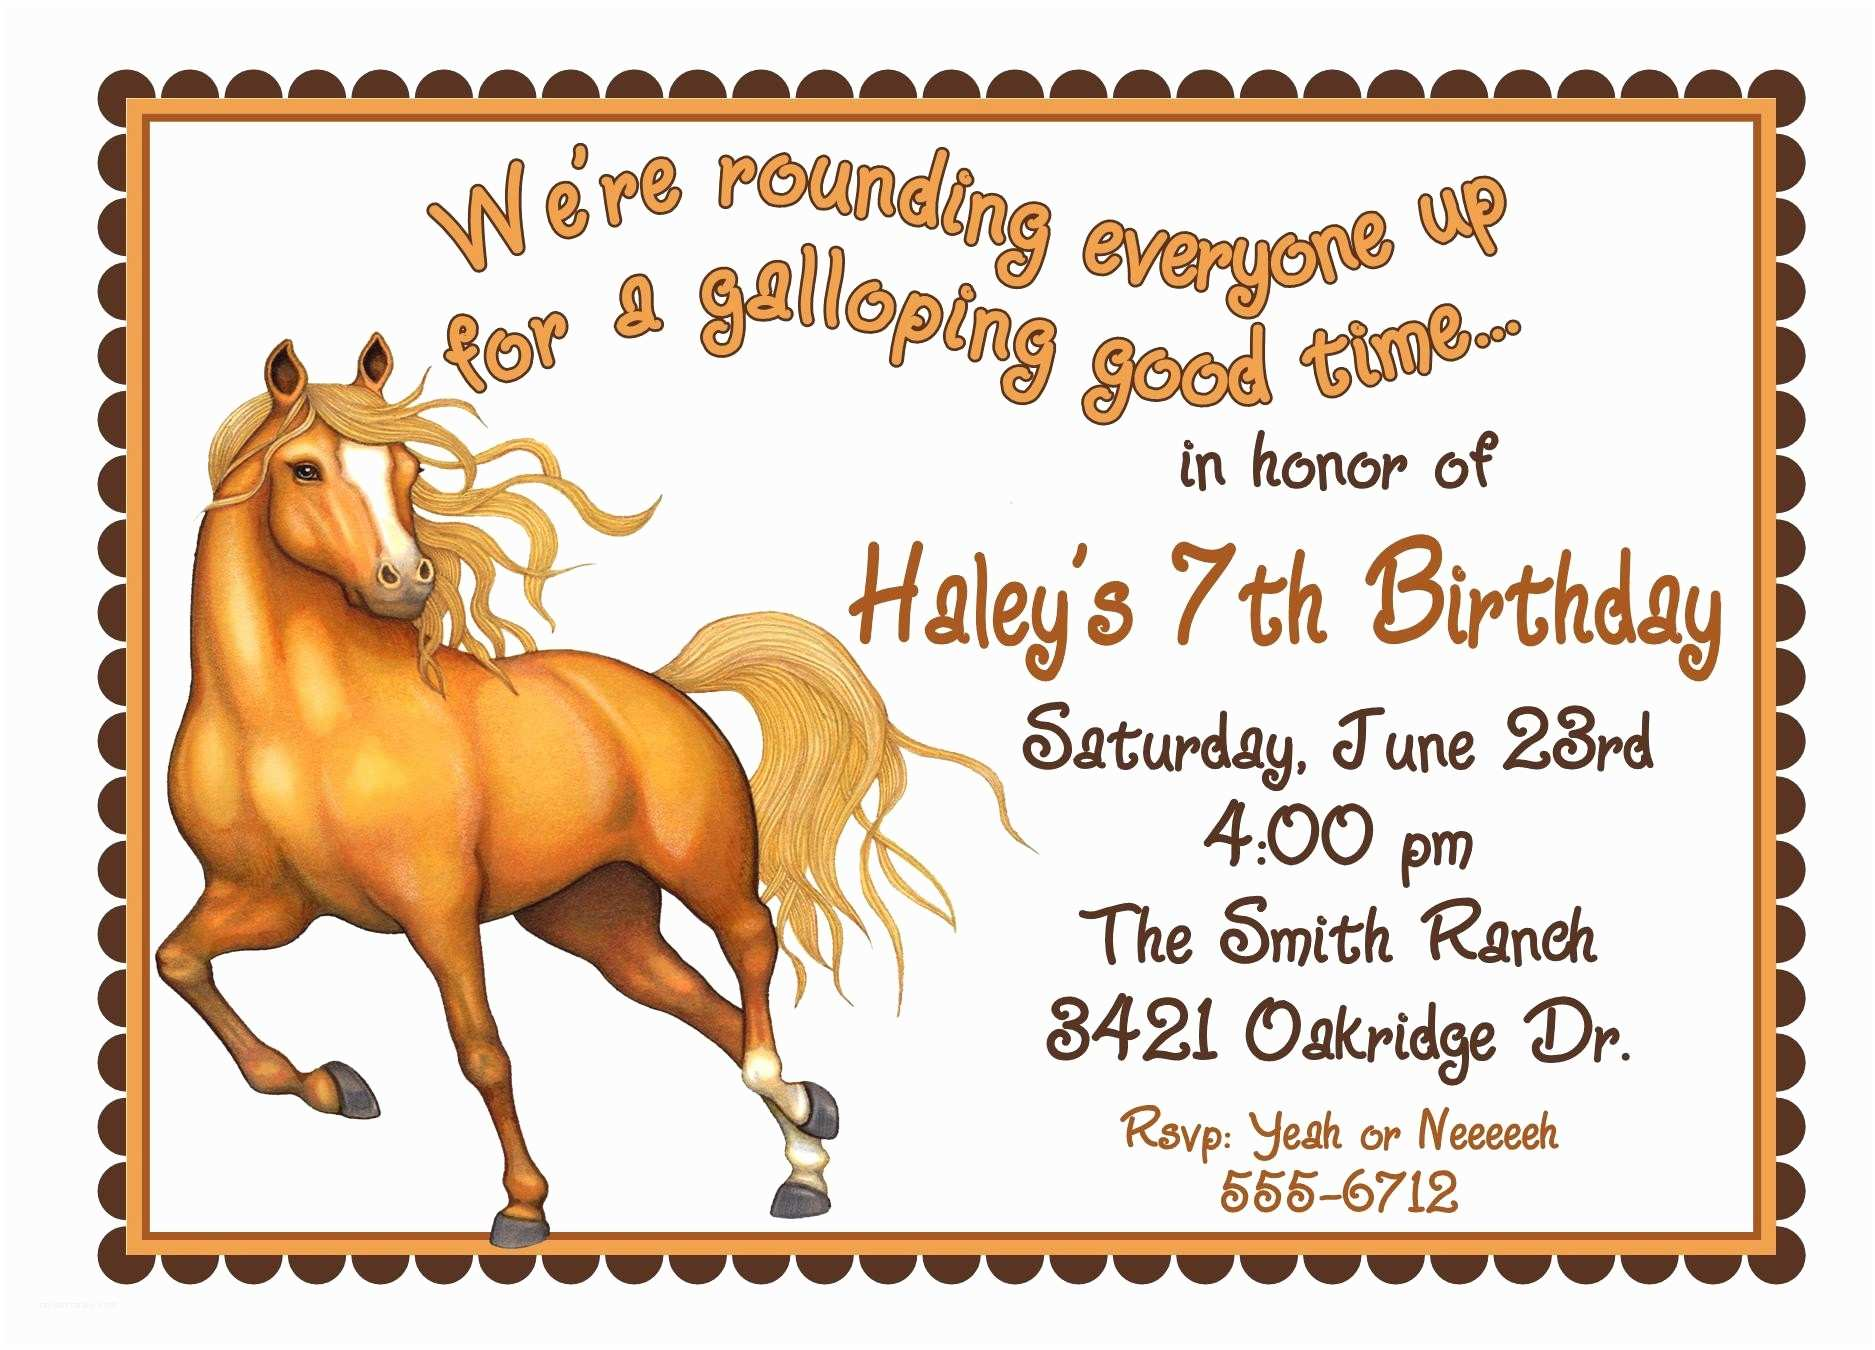 Horse Party Invitations Personalized Birthday Invitations Horse Western Wild West